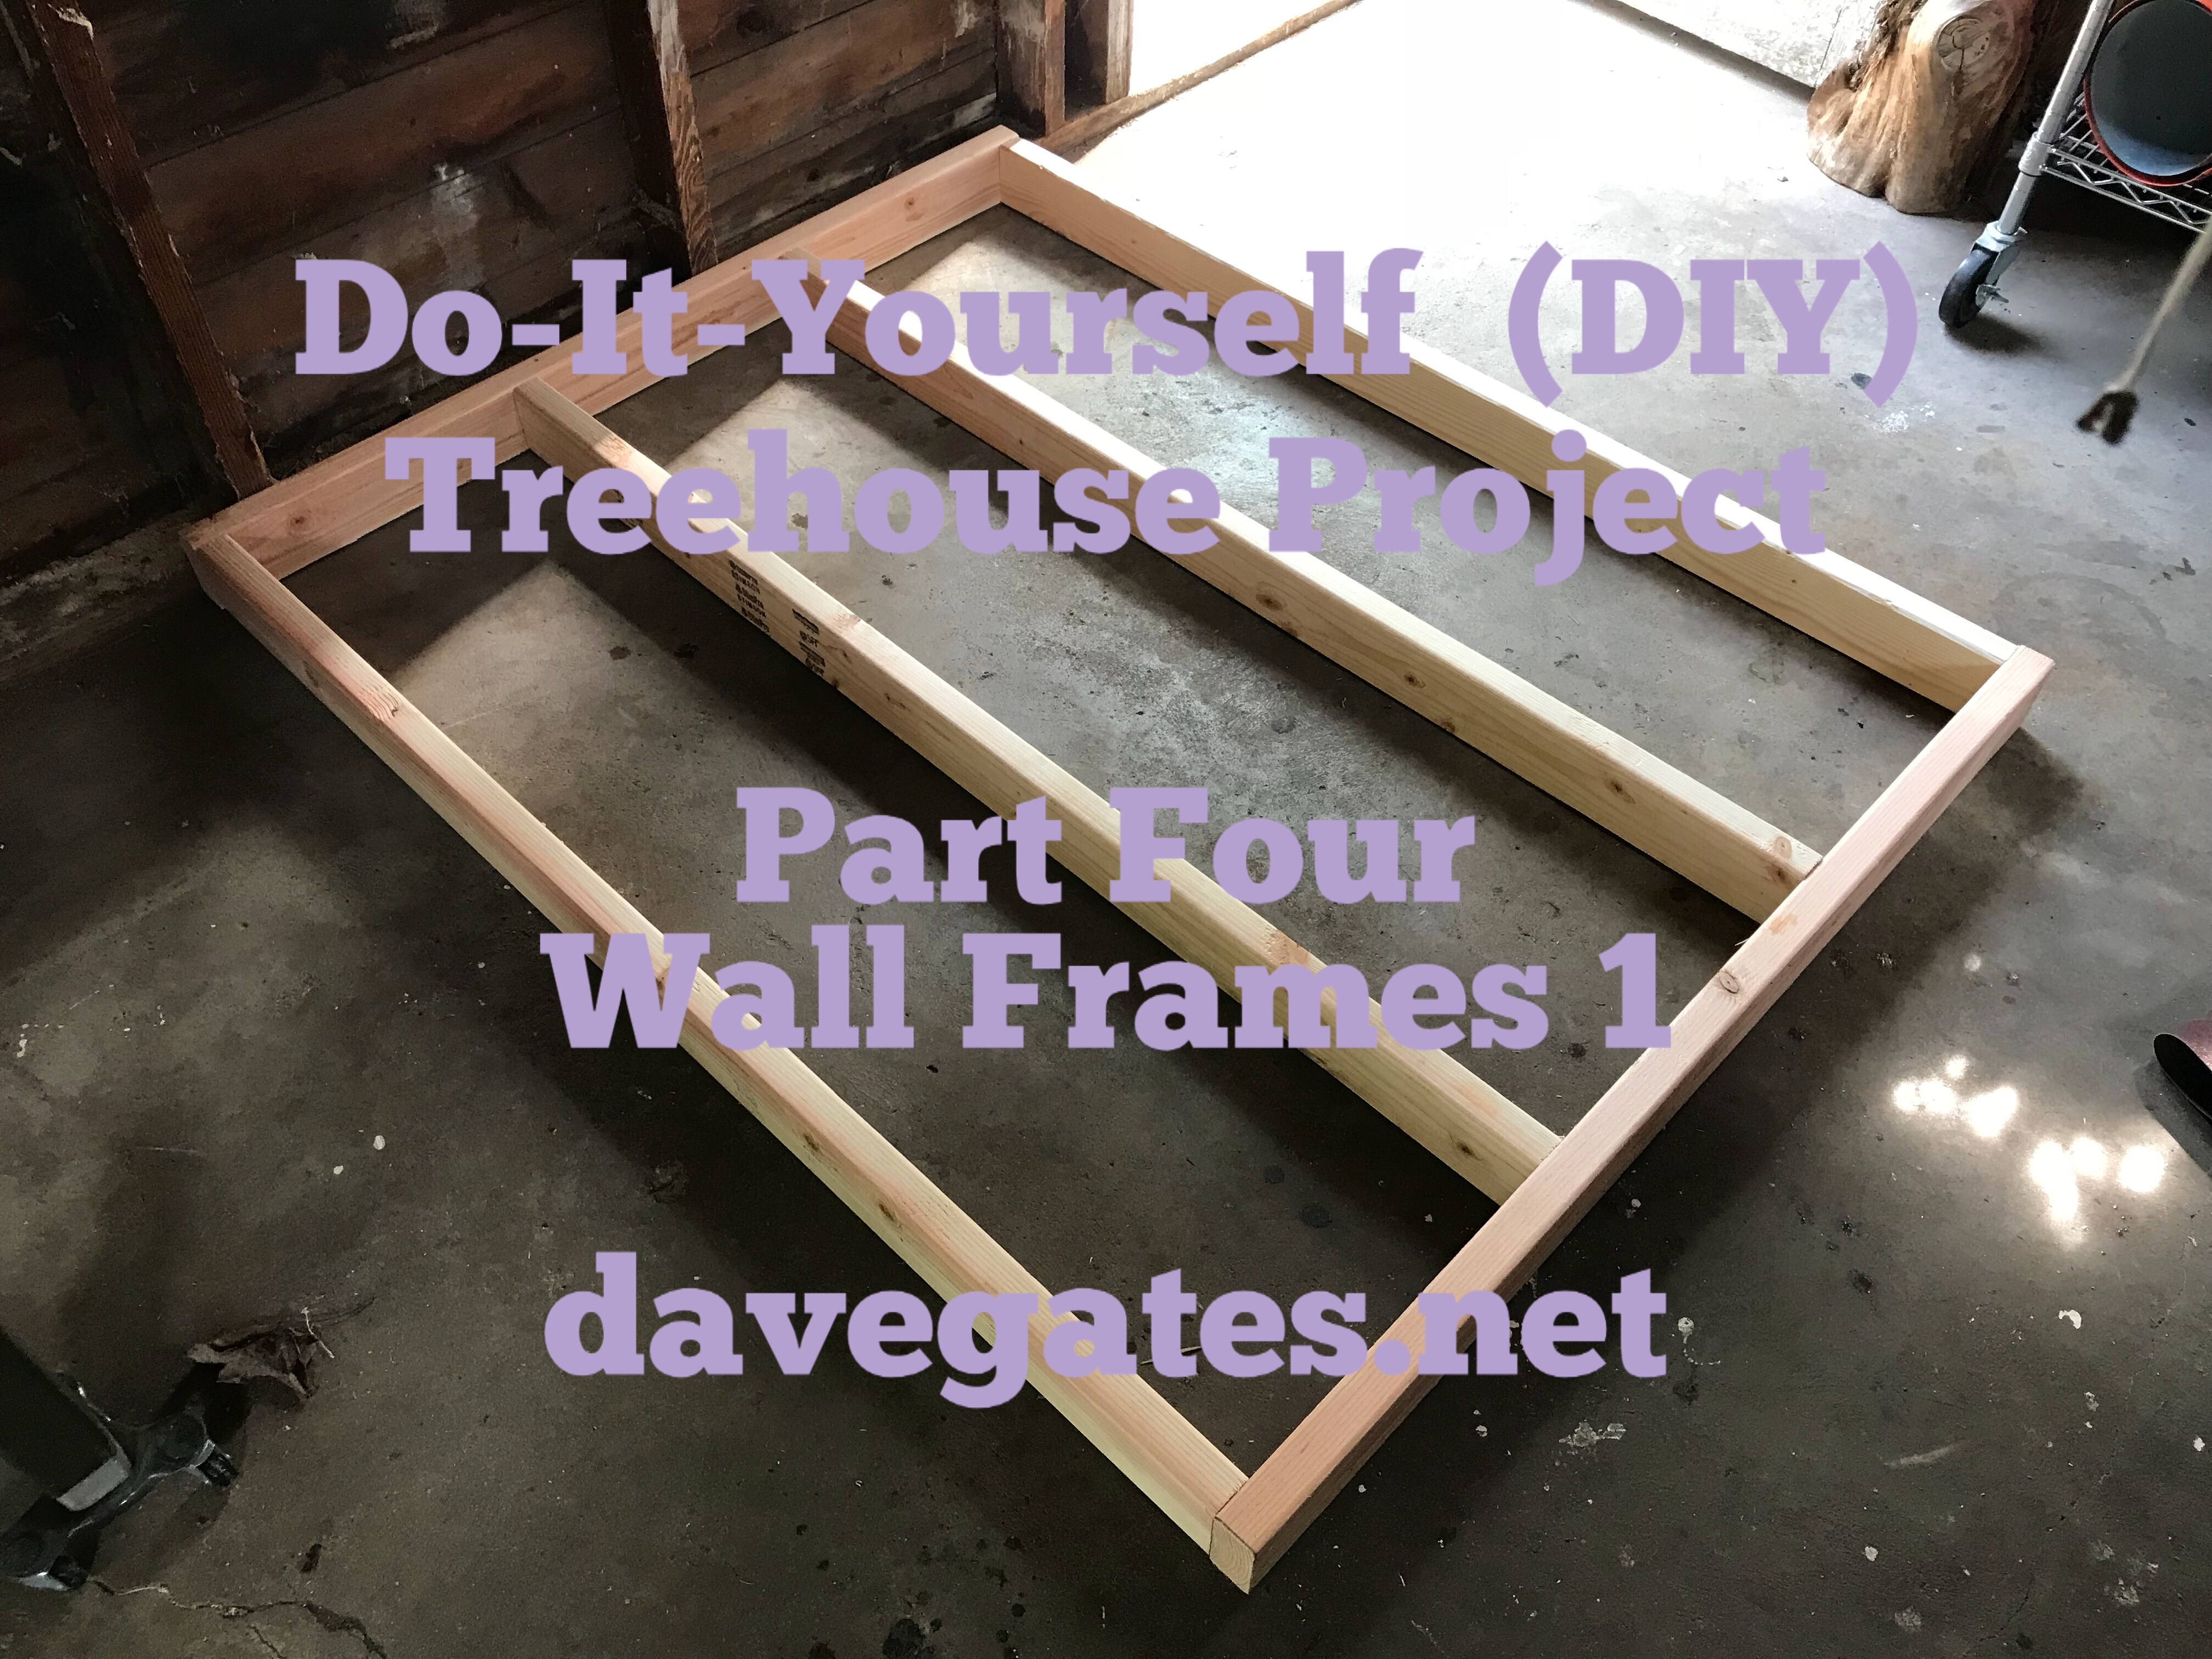 Do-It-Yourself (DIY) – Tree house Project – Part Four – Wall Frames ...